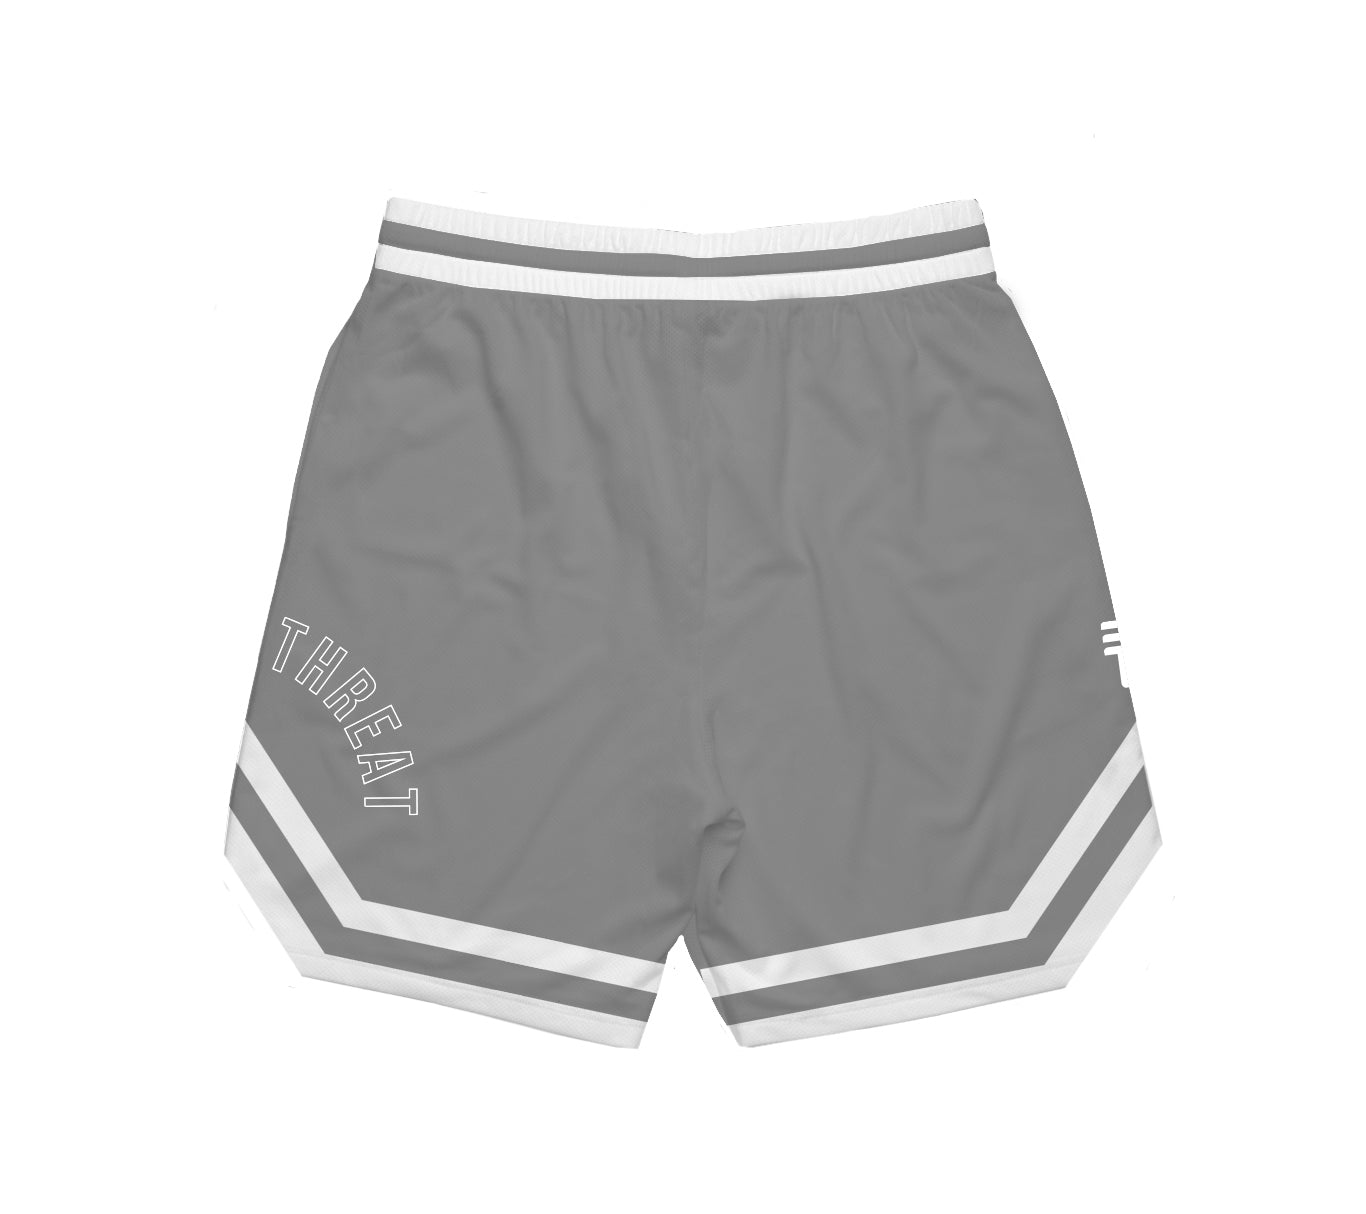 TRIPLE THREAT OG SHORTS - GREY